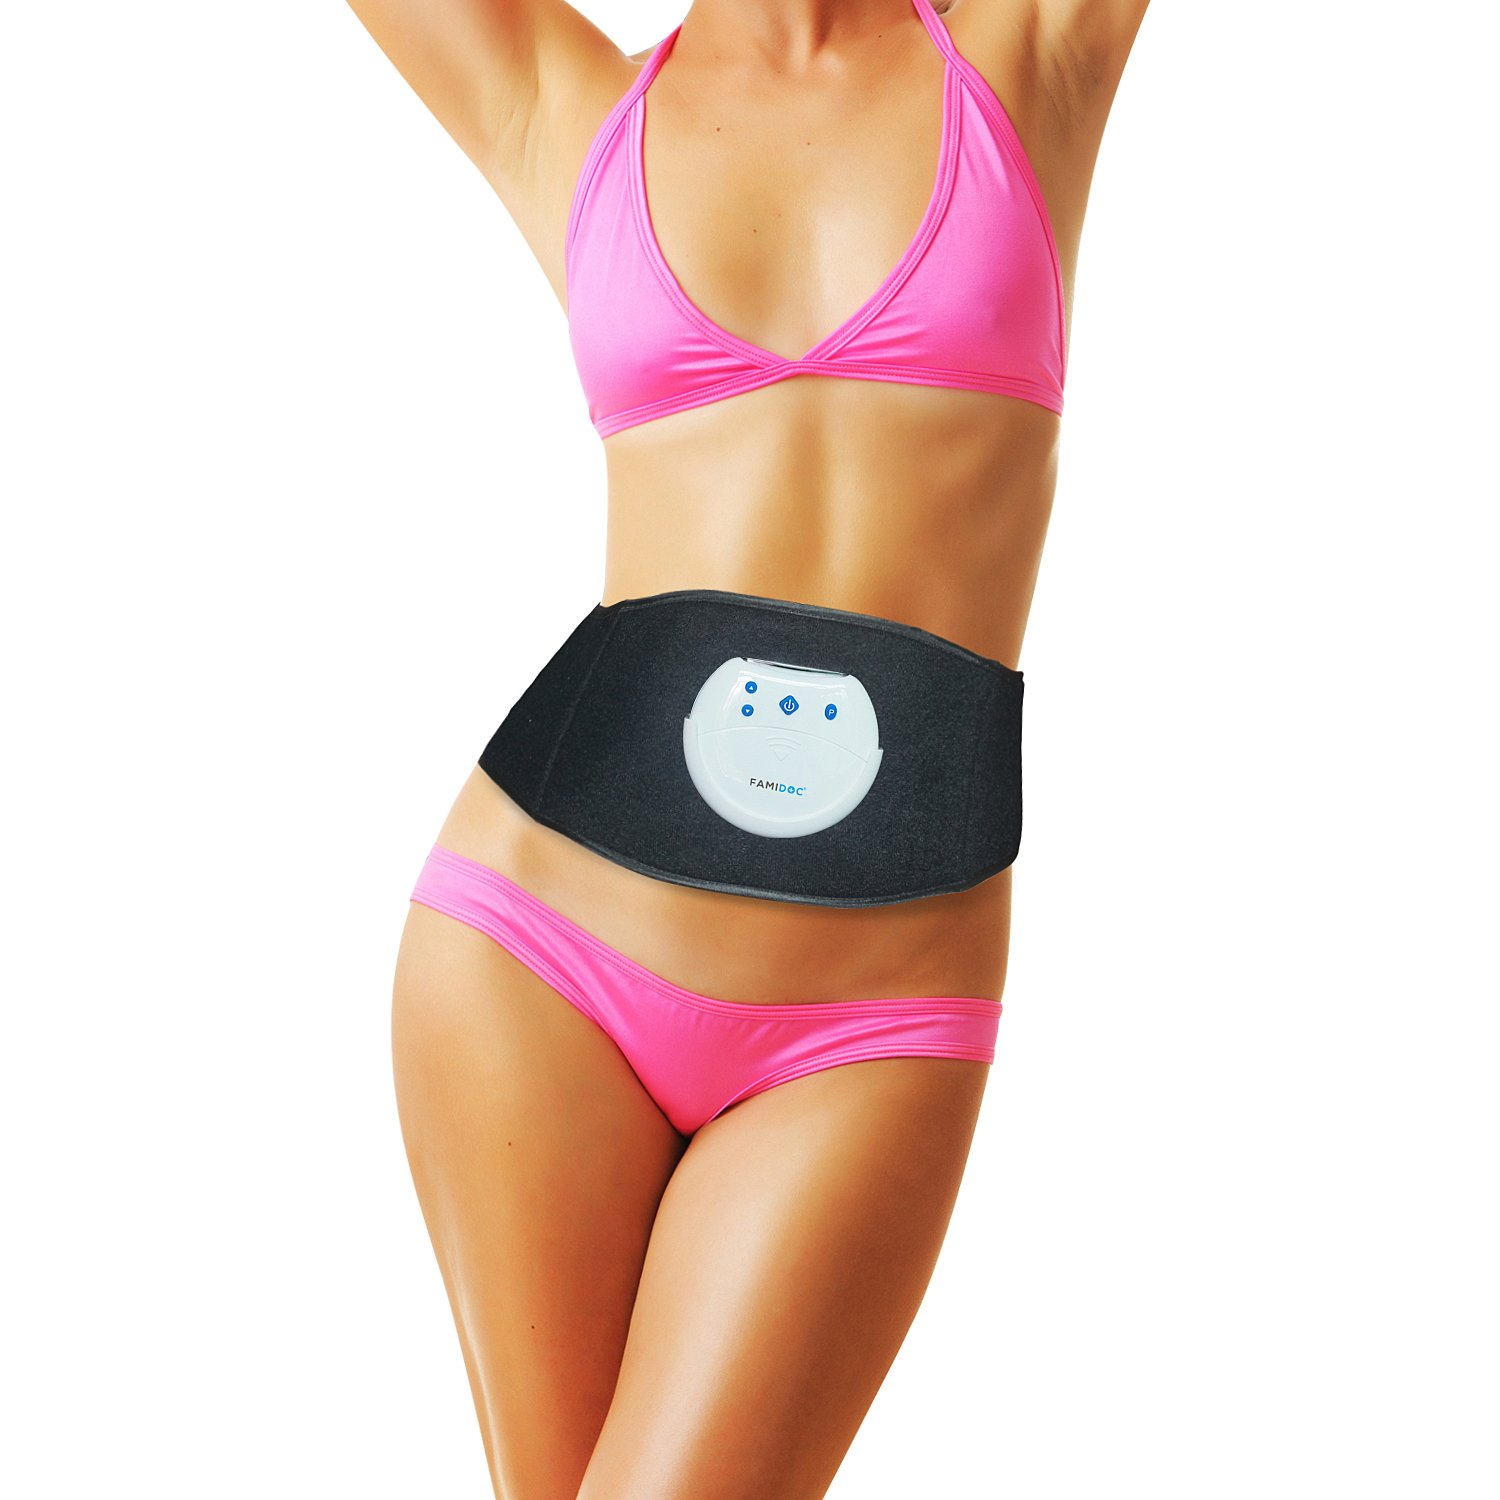 FAMIDOC Waist Trimmer Ab Belt - FDA Cleared FDES107(Newest Gel-Free Permanent Use Silicon Electrodes Technology) Ab Trainer Workout Belt EMS Unit for Weight Loss,Slimming,Tone,Strengthen The Muscles